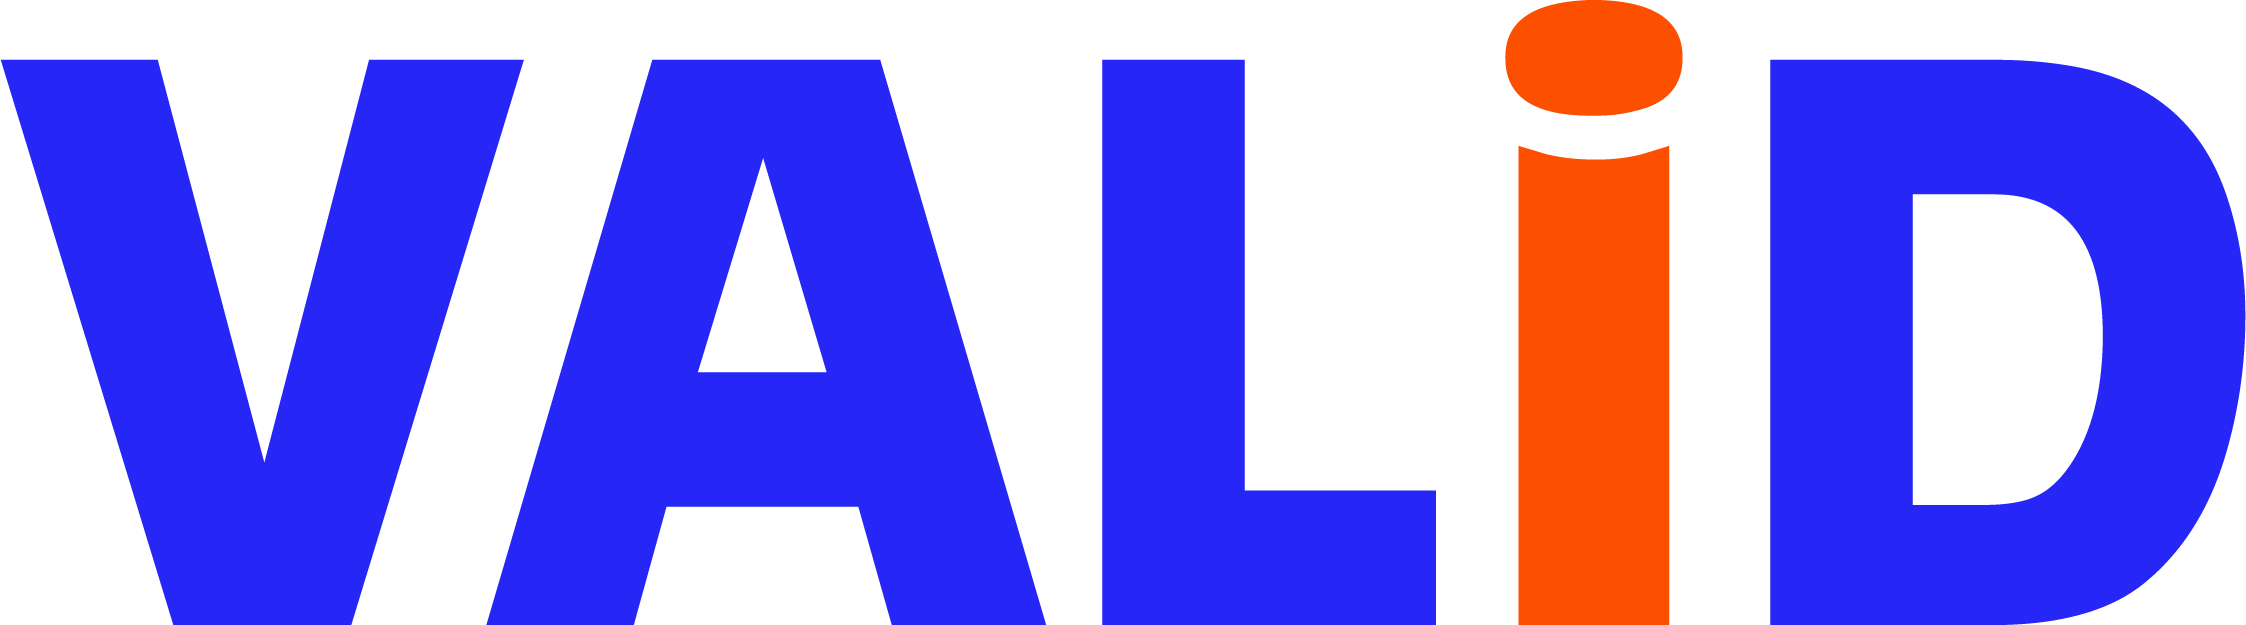 Victorian Advocacy League for Individuals with Disability (VALiD logo)